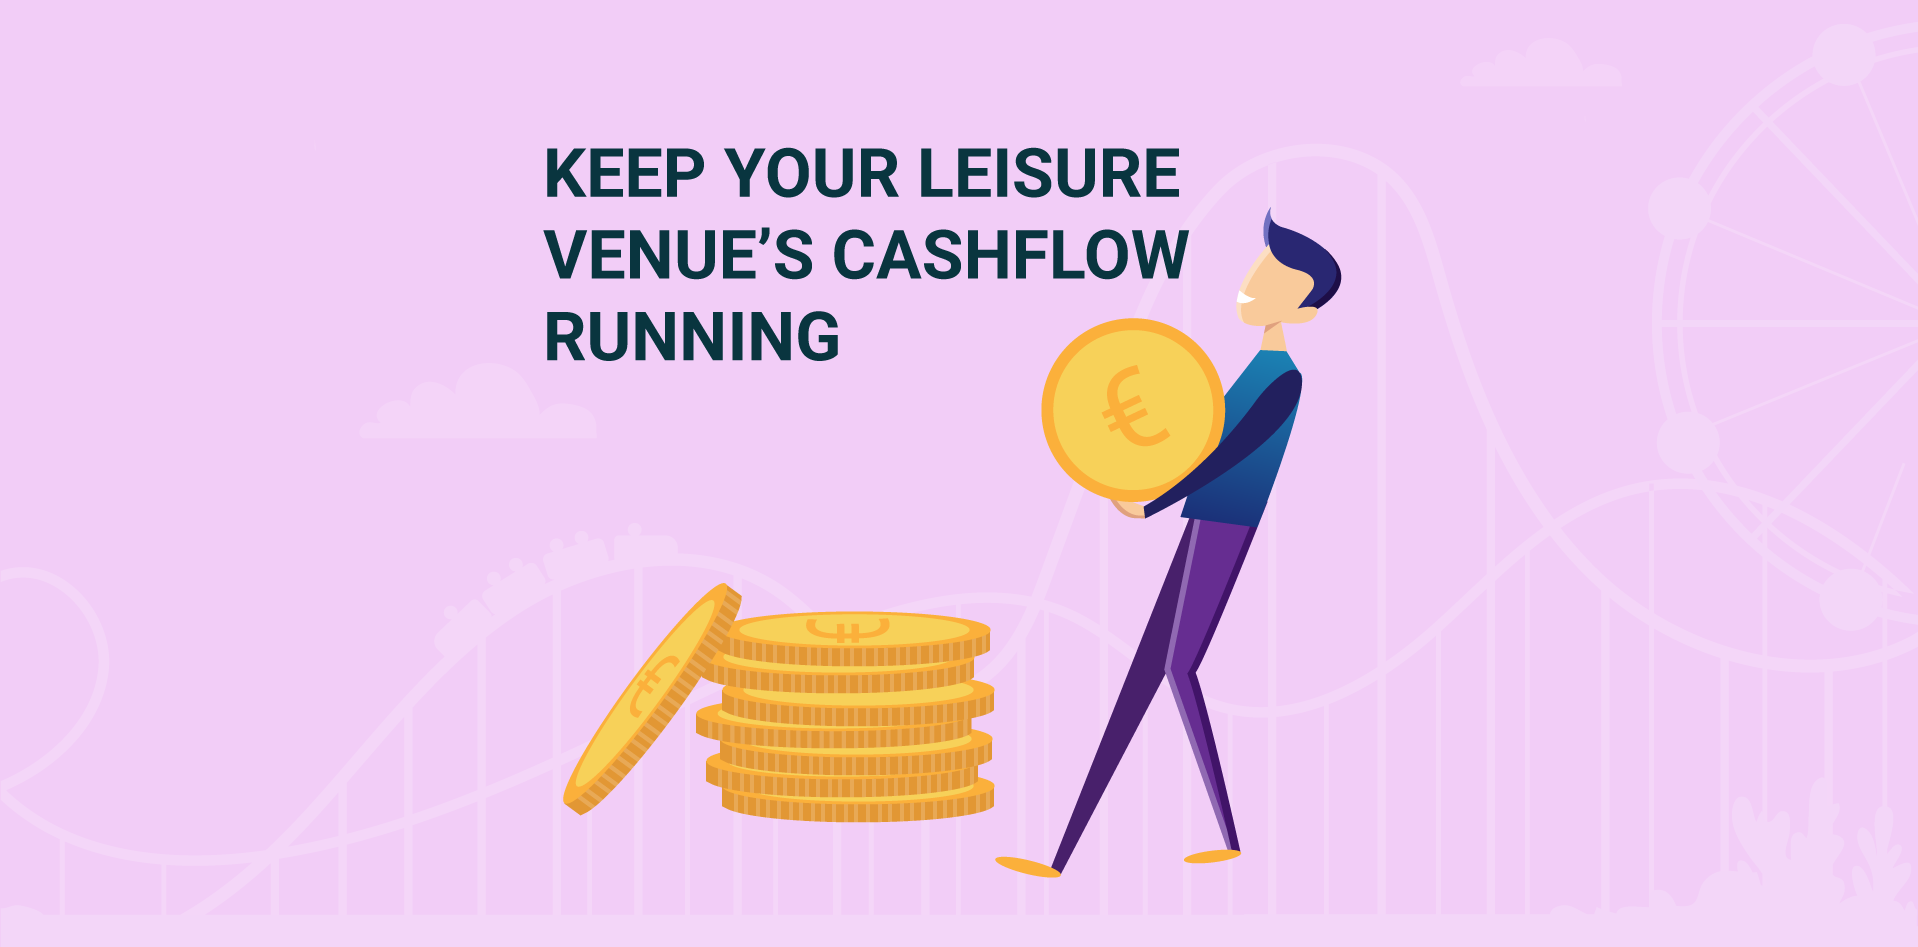 How to keep your leisure venue's cash flow running during lockdown